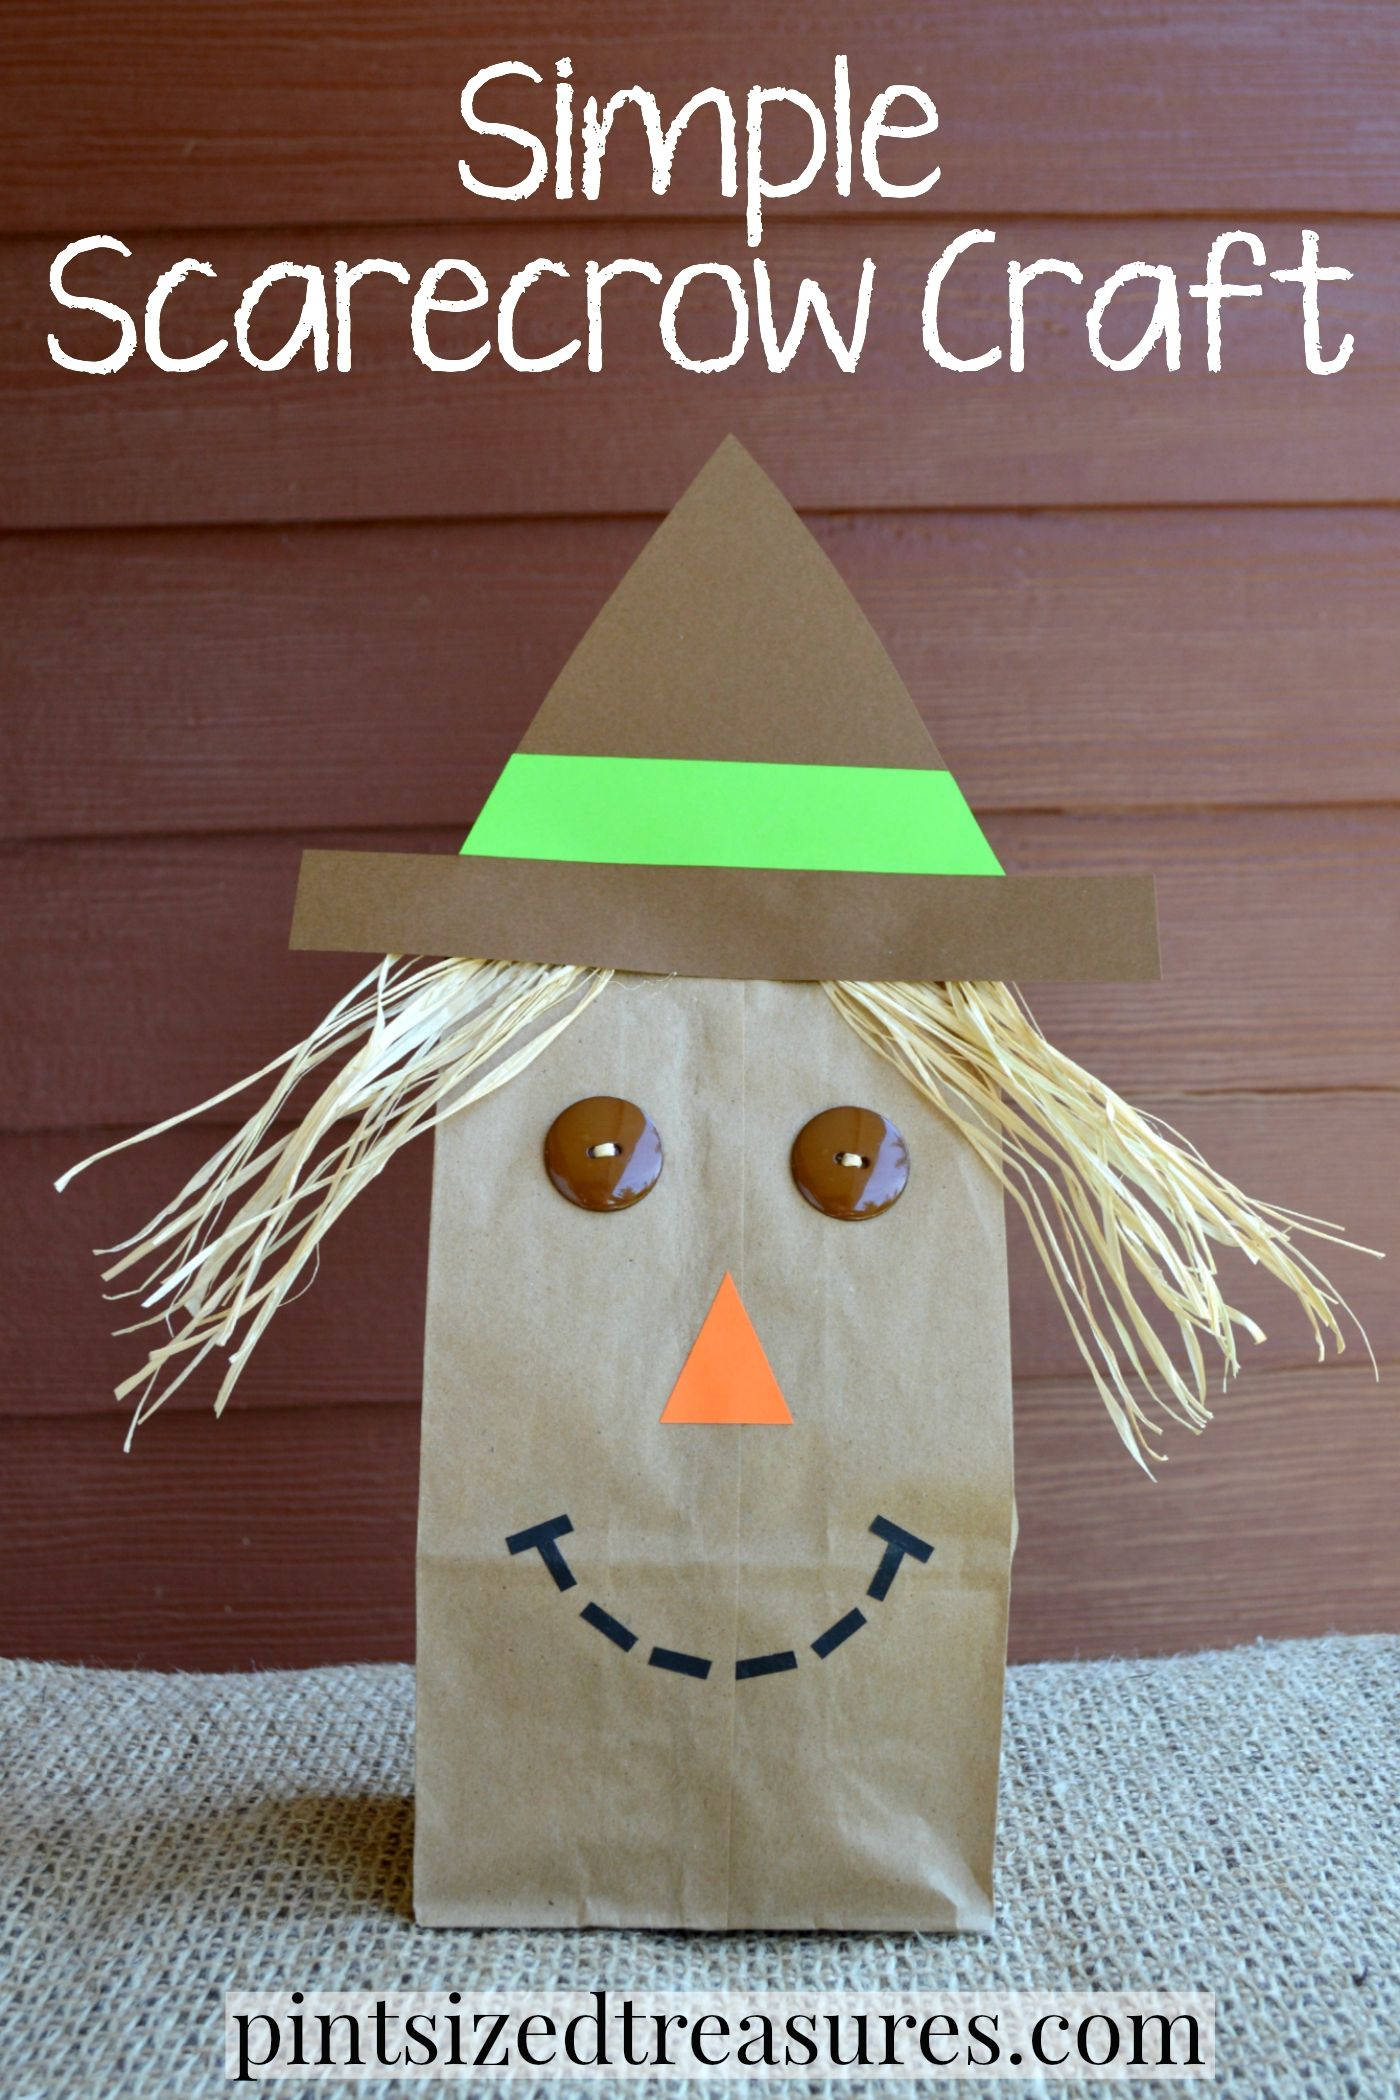 Pirate crafts for toddlers - Kids Love This Simple Paper Bag Scarecrow Craft It S Too Much Fun